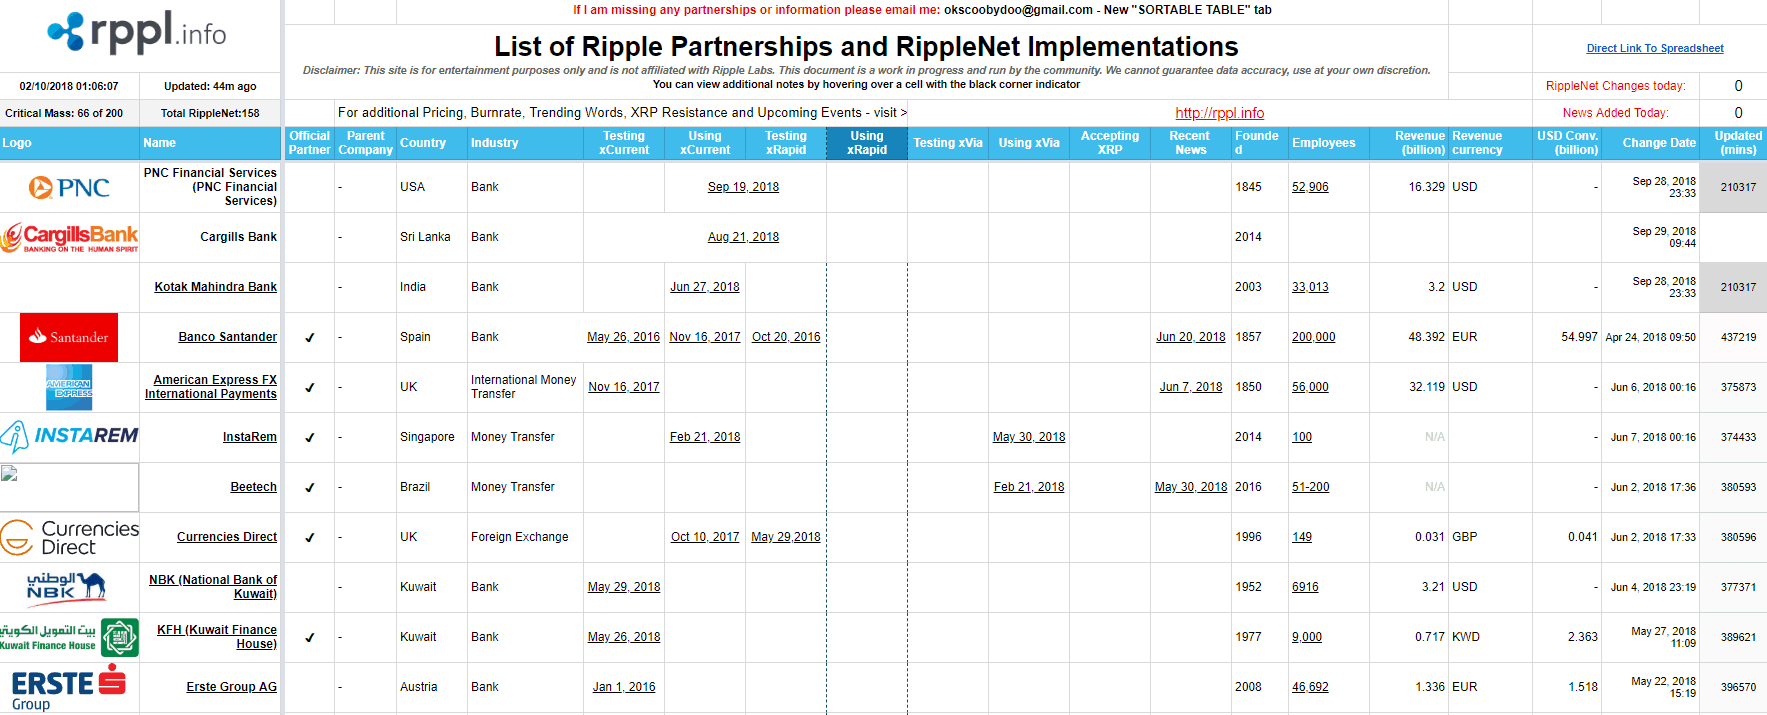 Ripple Partnerships